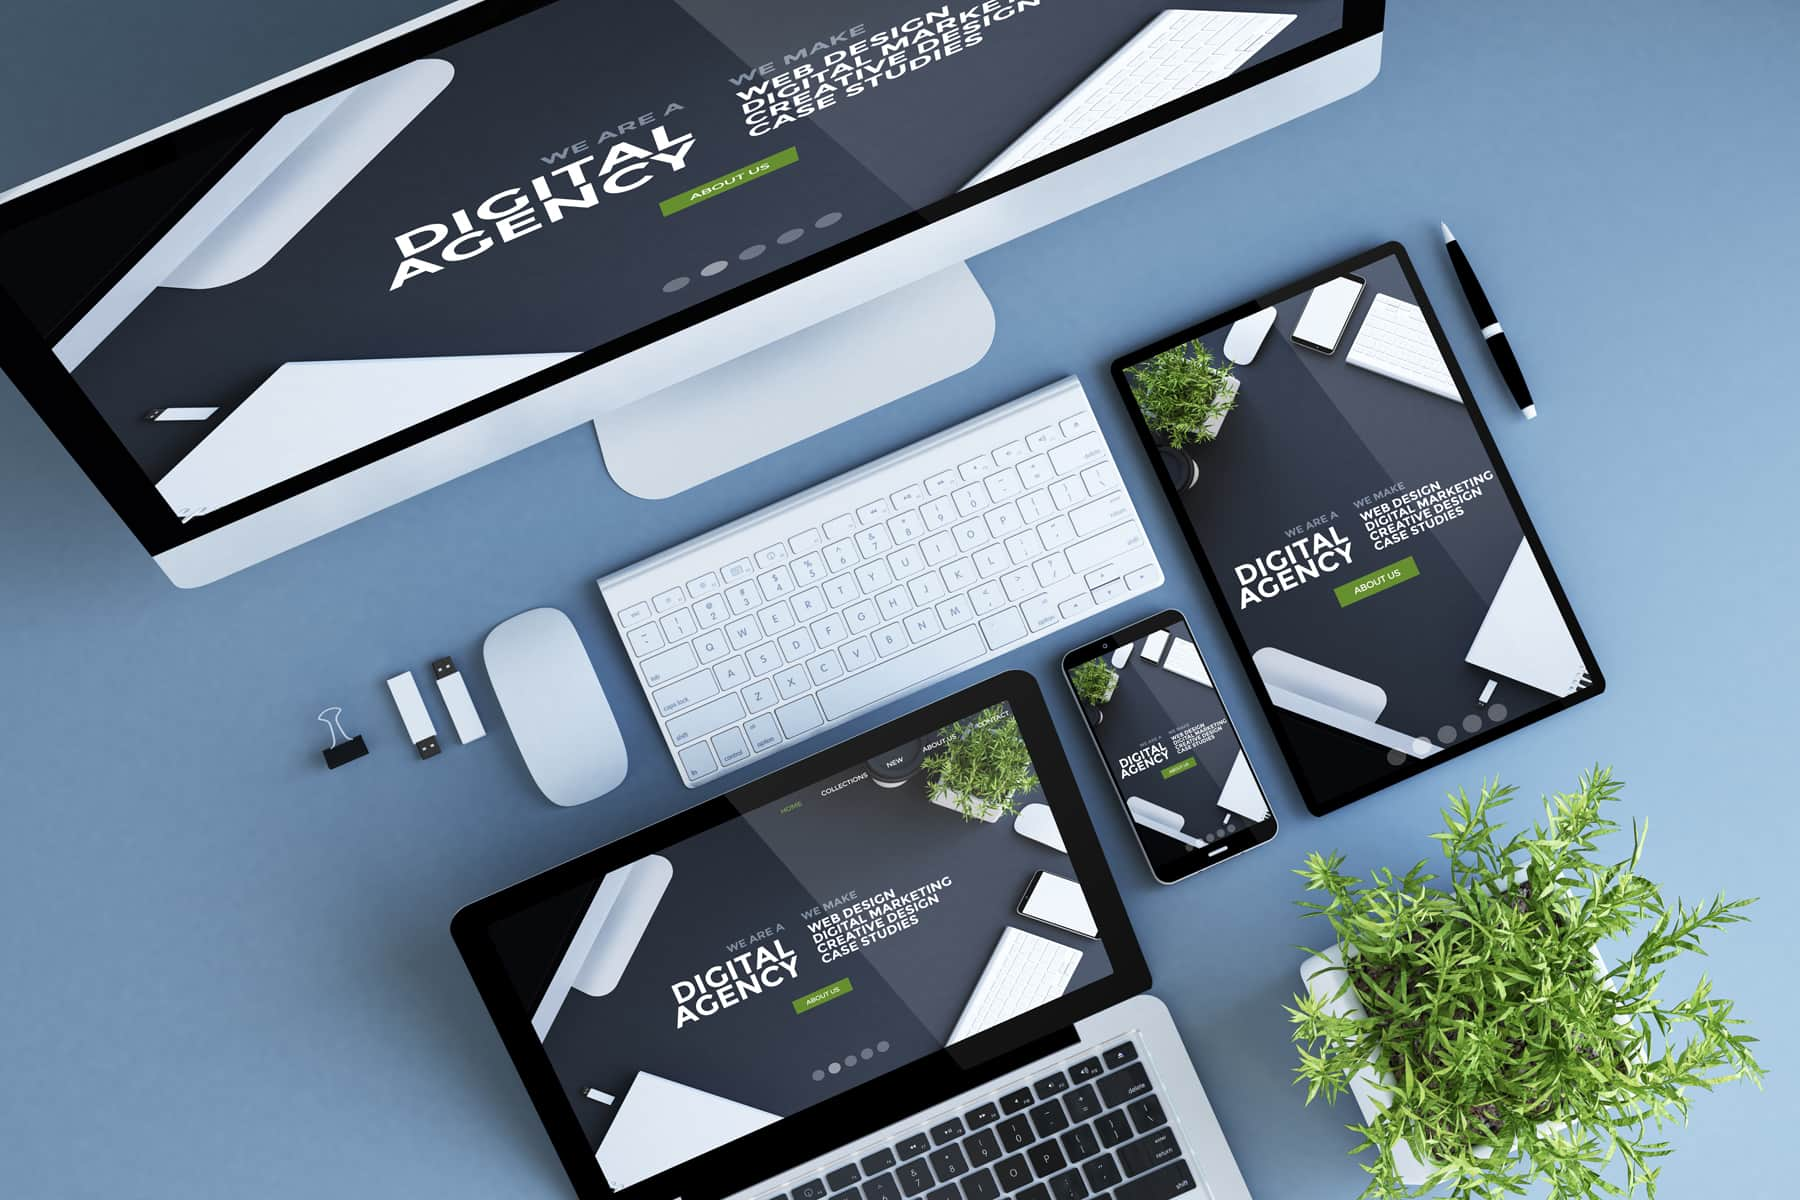 Four different devices show a responsive web design on their screens and words that describe a digital marketing company.